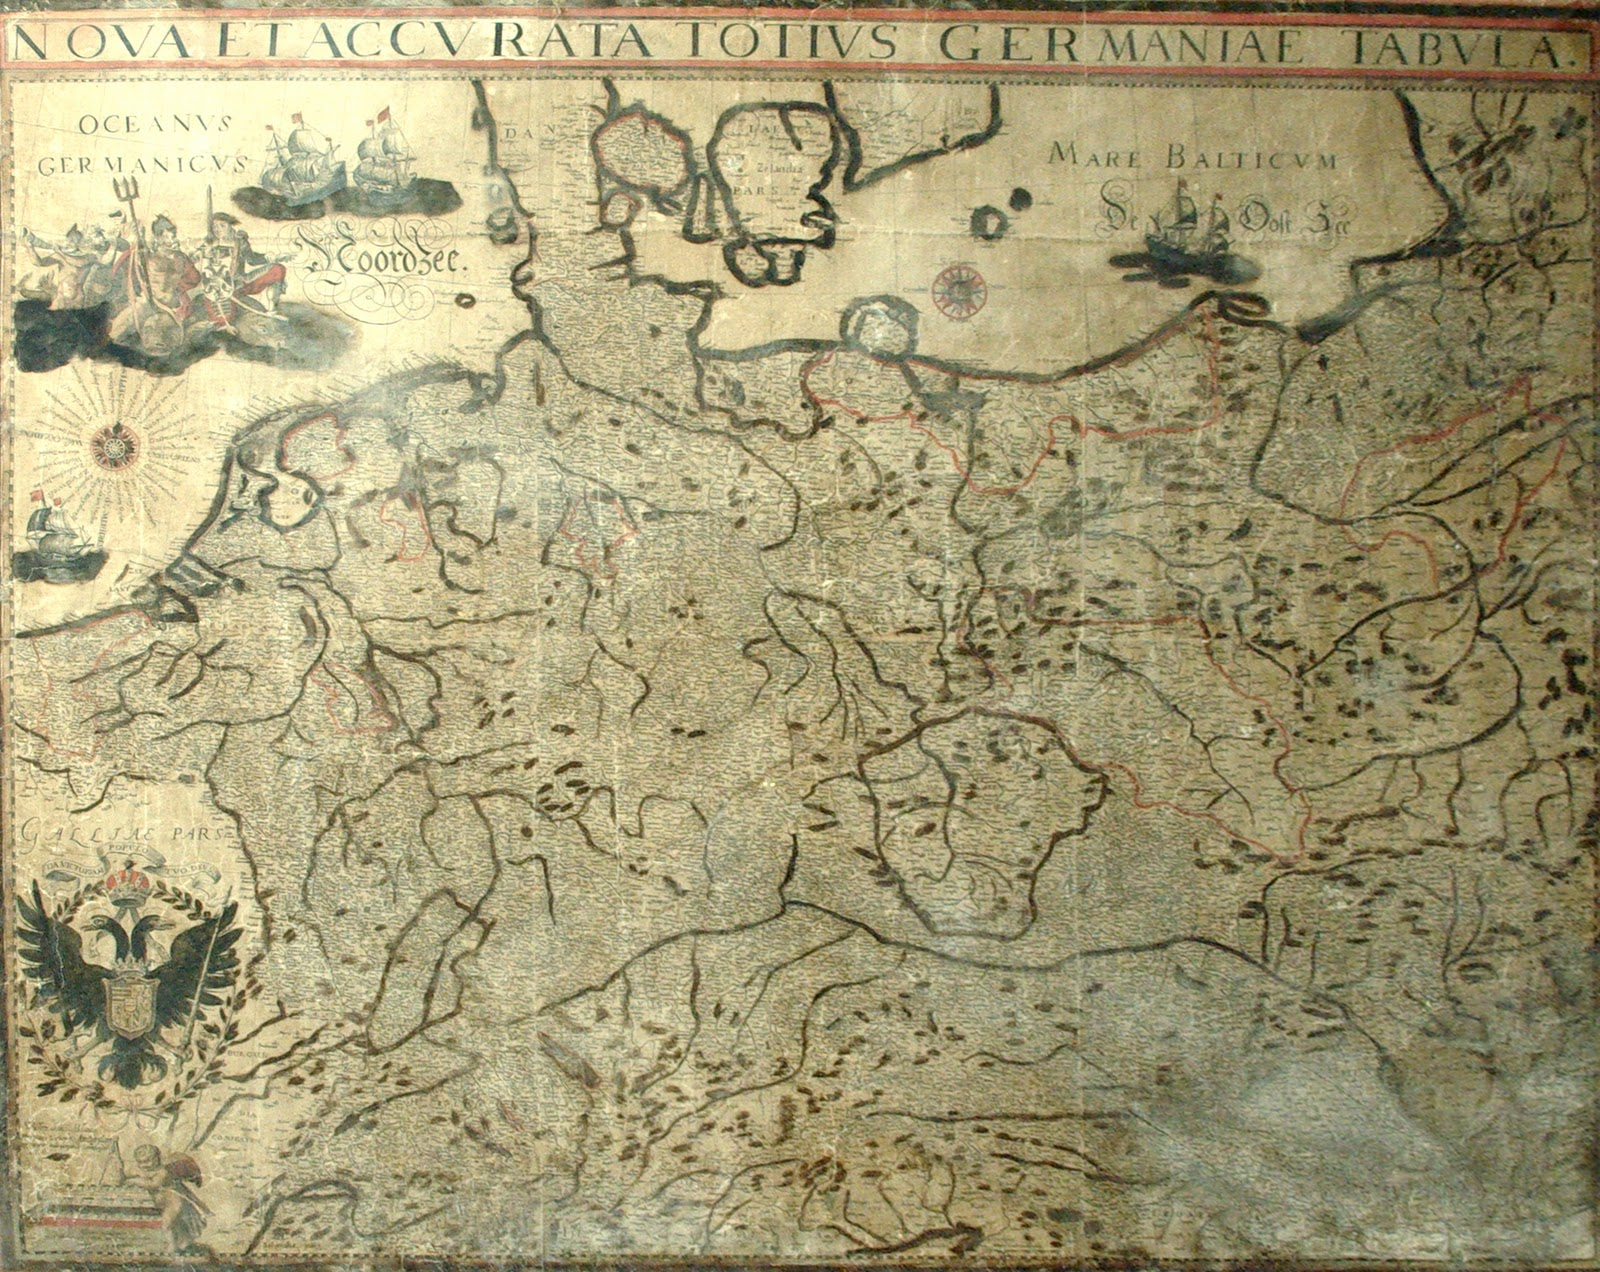 Graham arader maps of the day three large wall maps representing maps of the day three large wall maps representing the continents gastaldi giacomo c 1500 1566 gumiabroncs Image collections